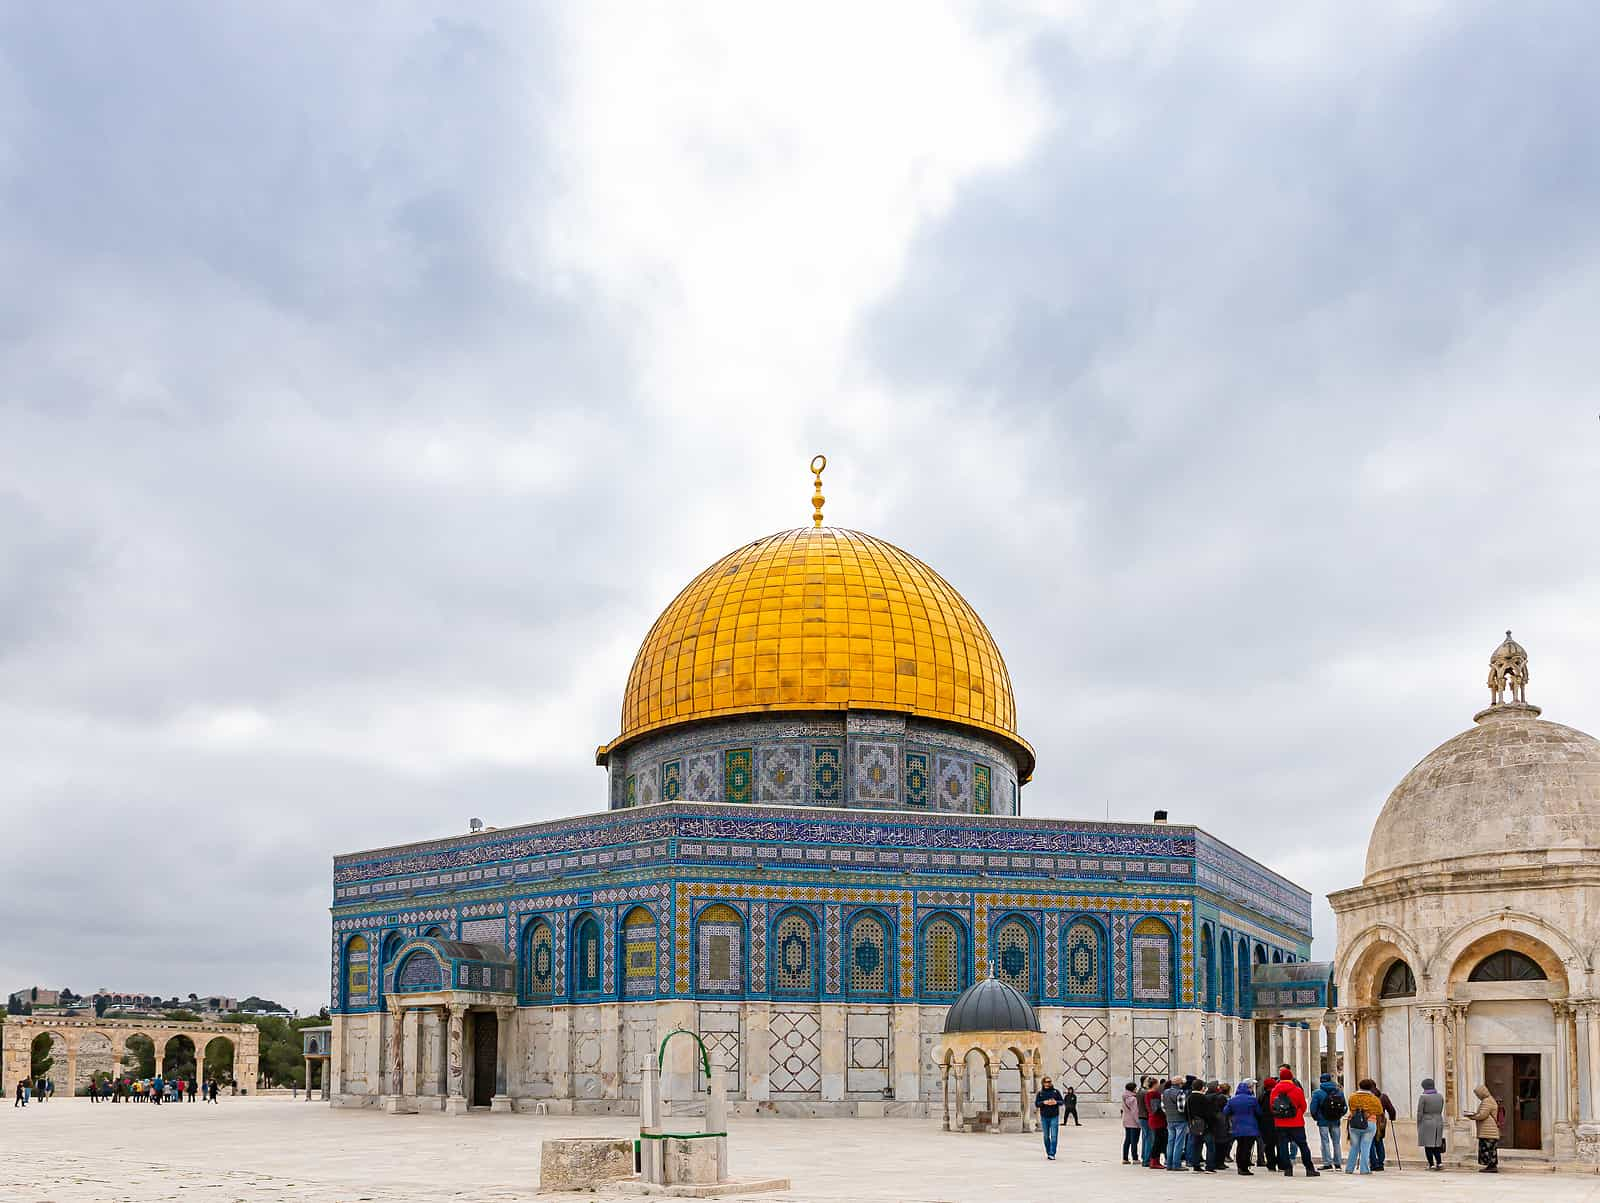 The Dome of the Rock mosque on the Temple Mount. One of the important sights jerusalem old city